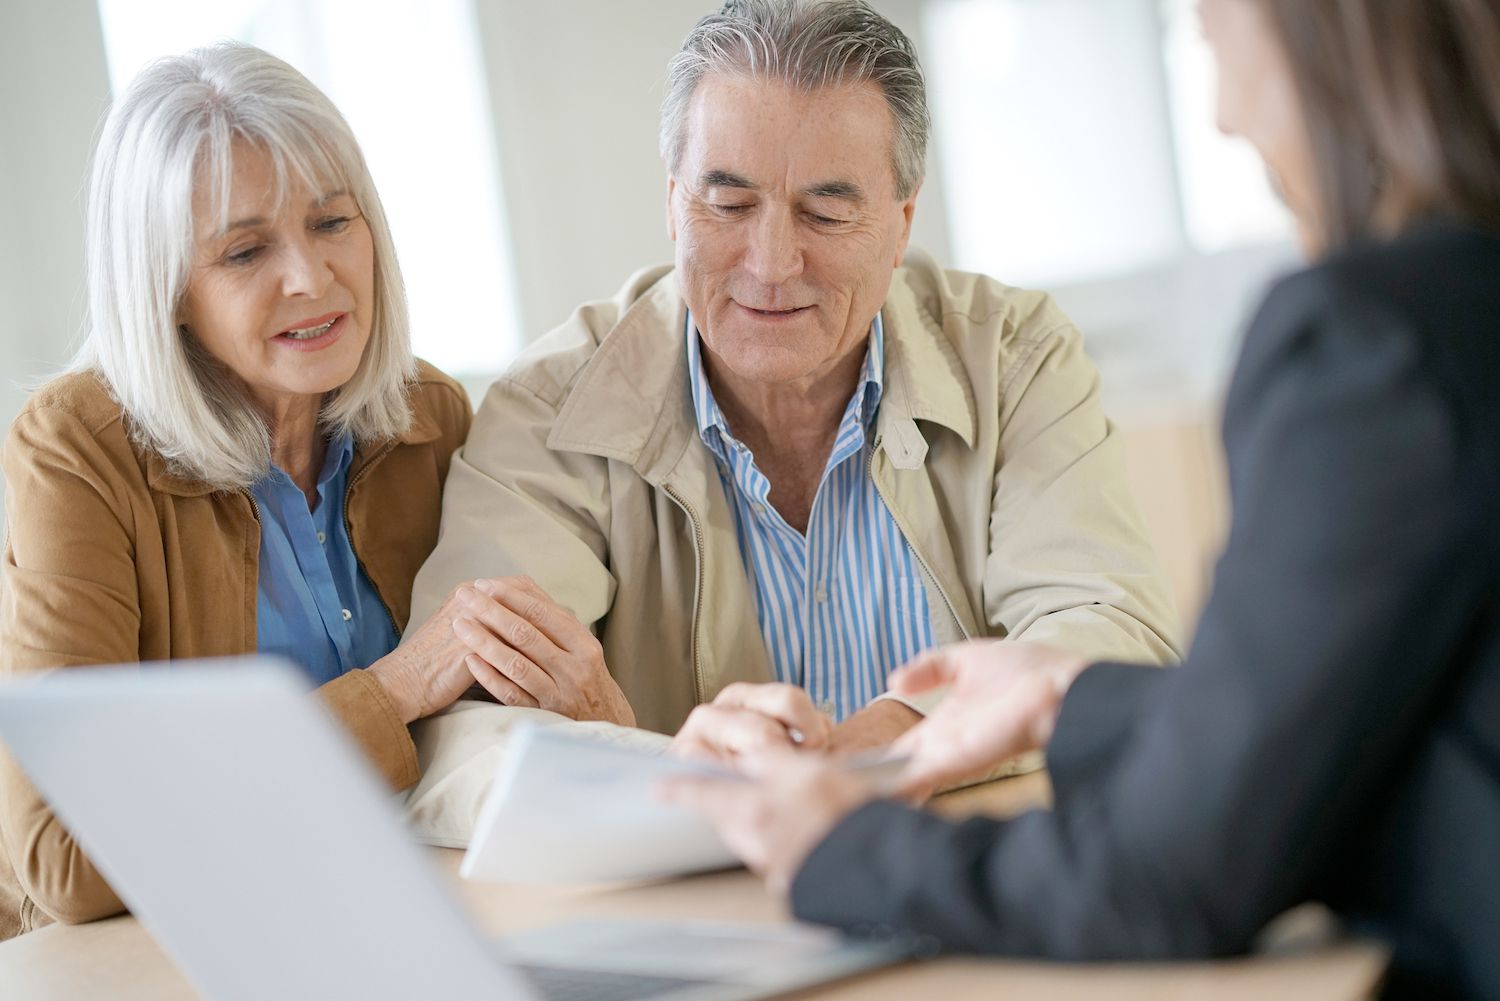 Tips for Picking the Best Mortgage Lender in Today's Digital World